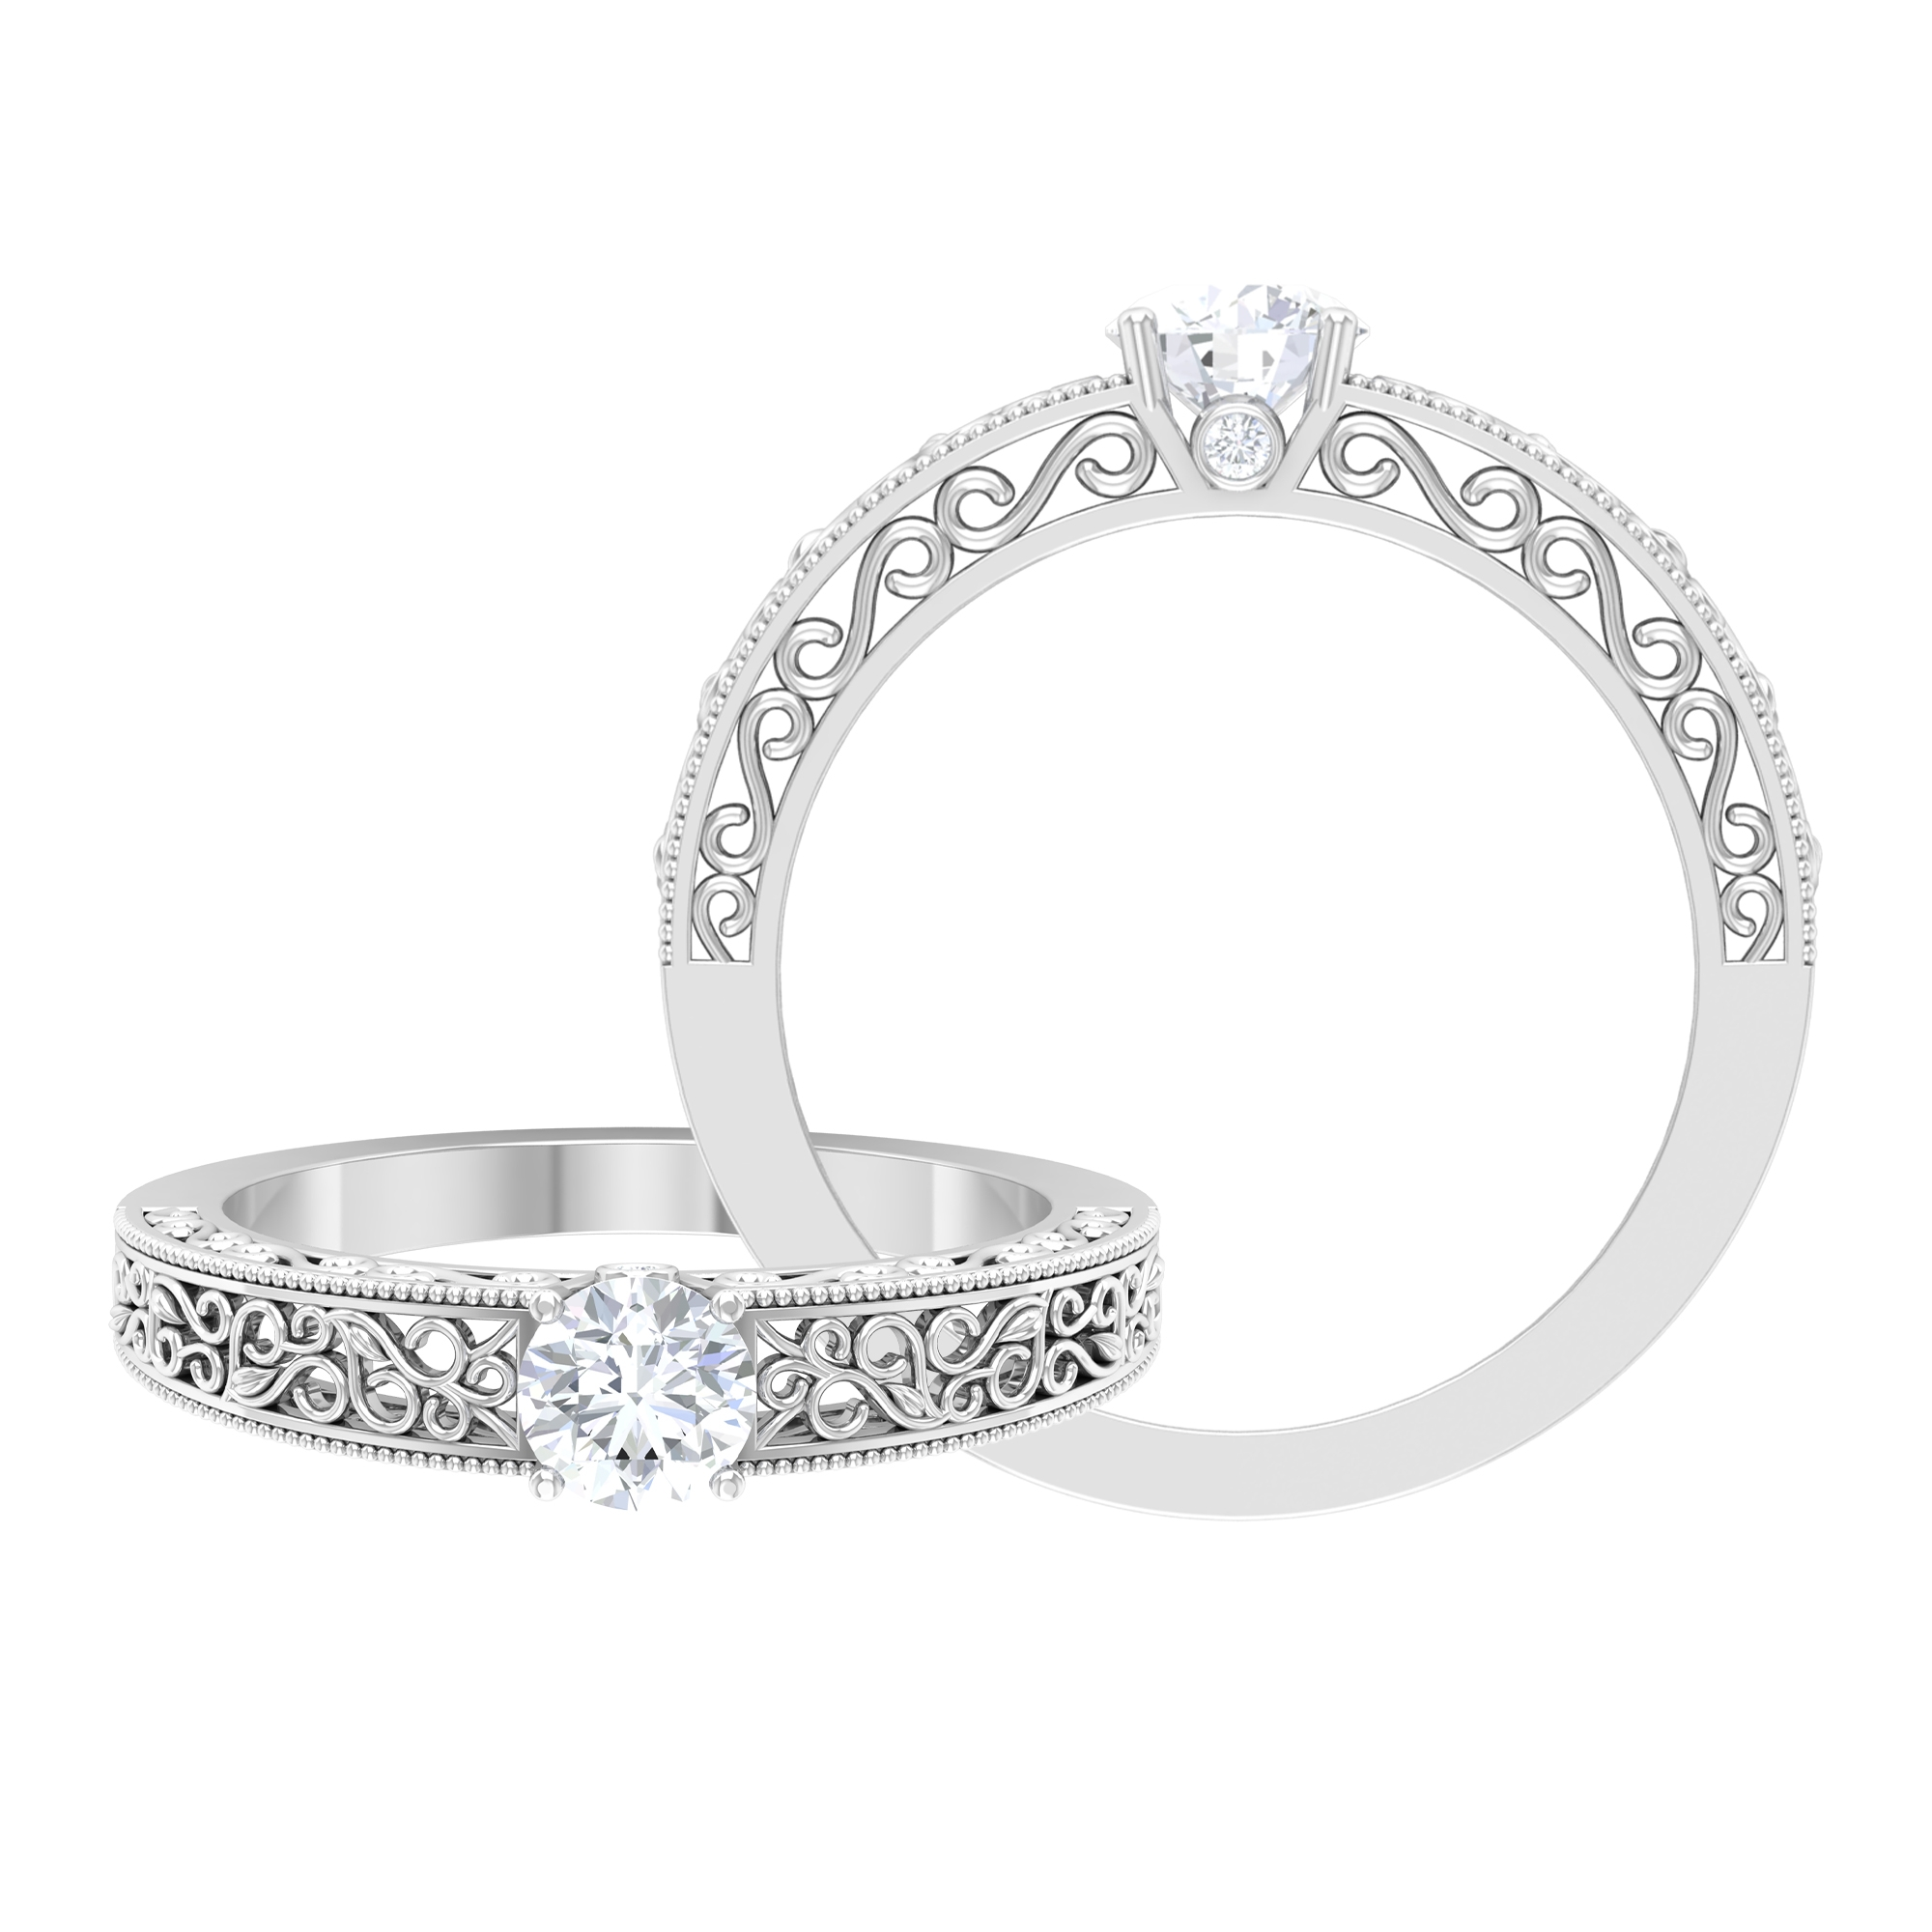 1/2 CT Prong Set Diamond Solitaire Ring with Filigree Details and Surprise Style